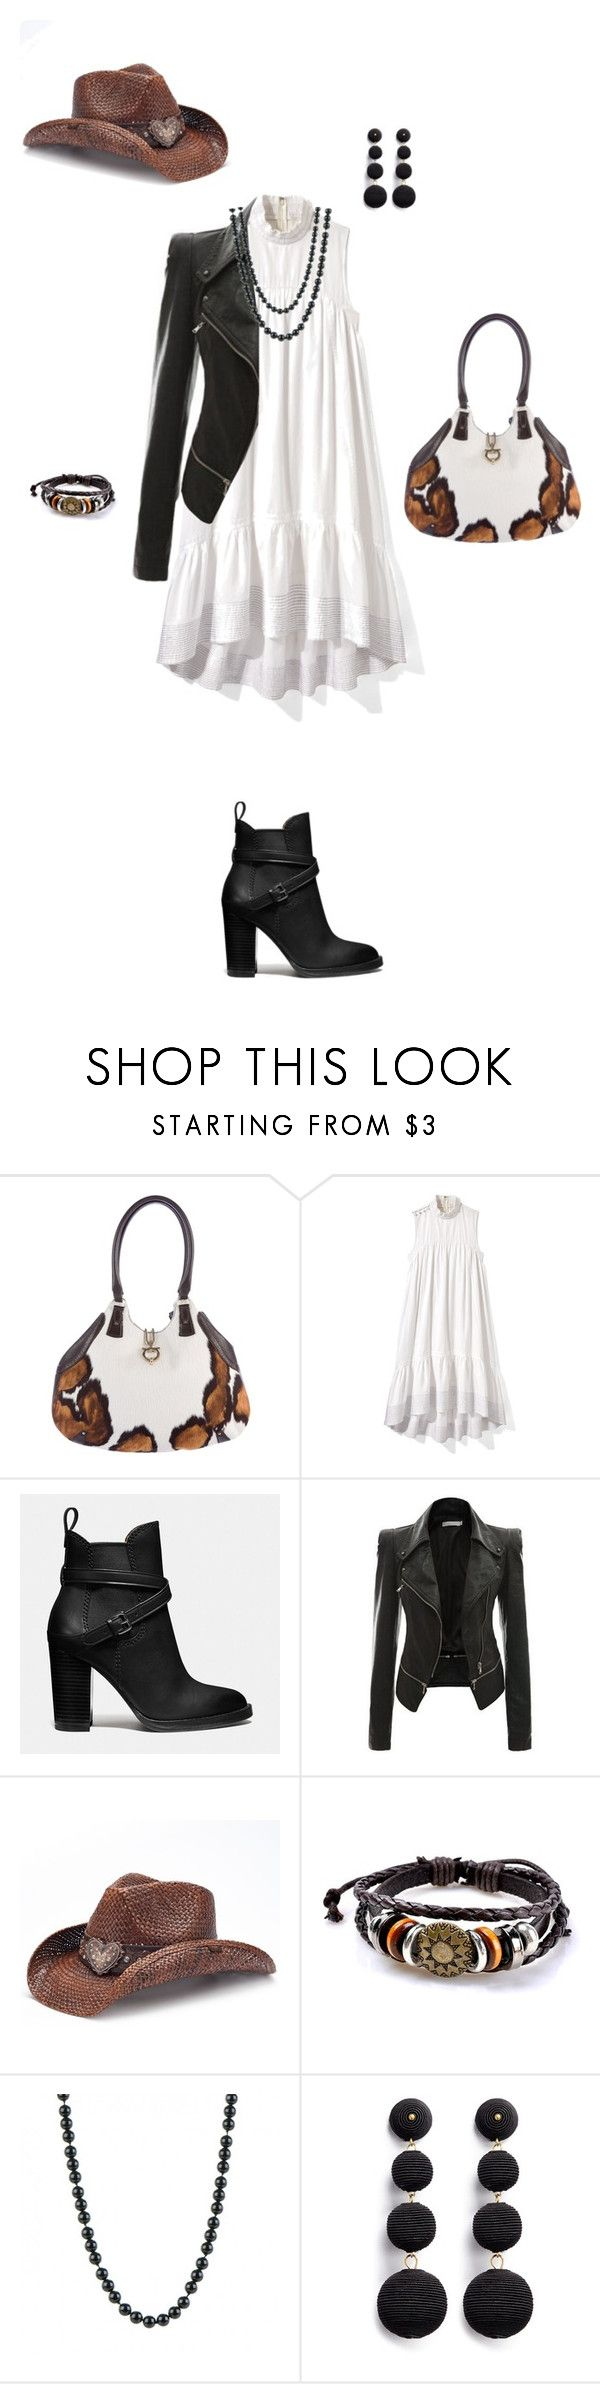 """""""Untitled #9321"""" by erinlindsay83 ❤ liked on Polyvore featuring Salvatore Ferragamo, 3.1 Phillip Lim, Coach, Peter Grimm and Kenneth Jay Lane"""